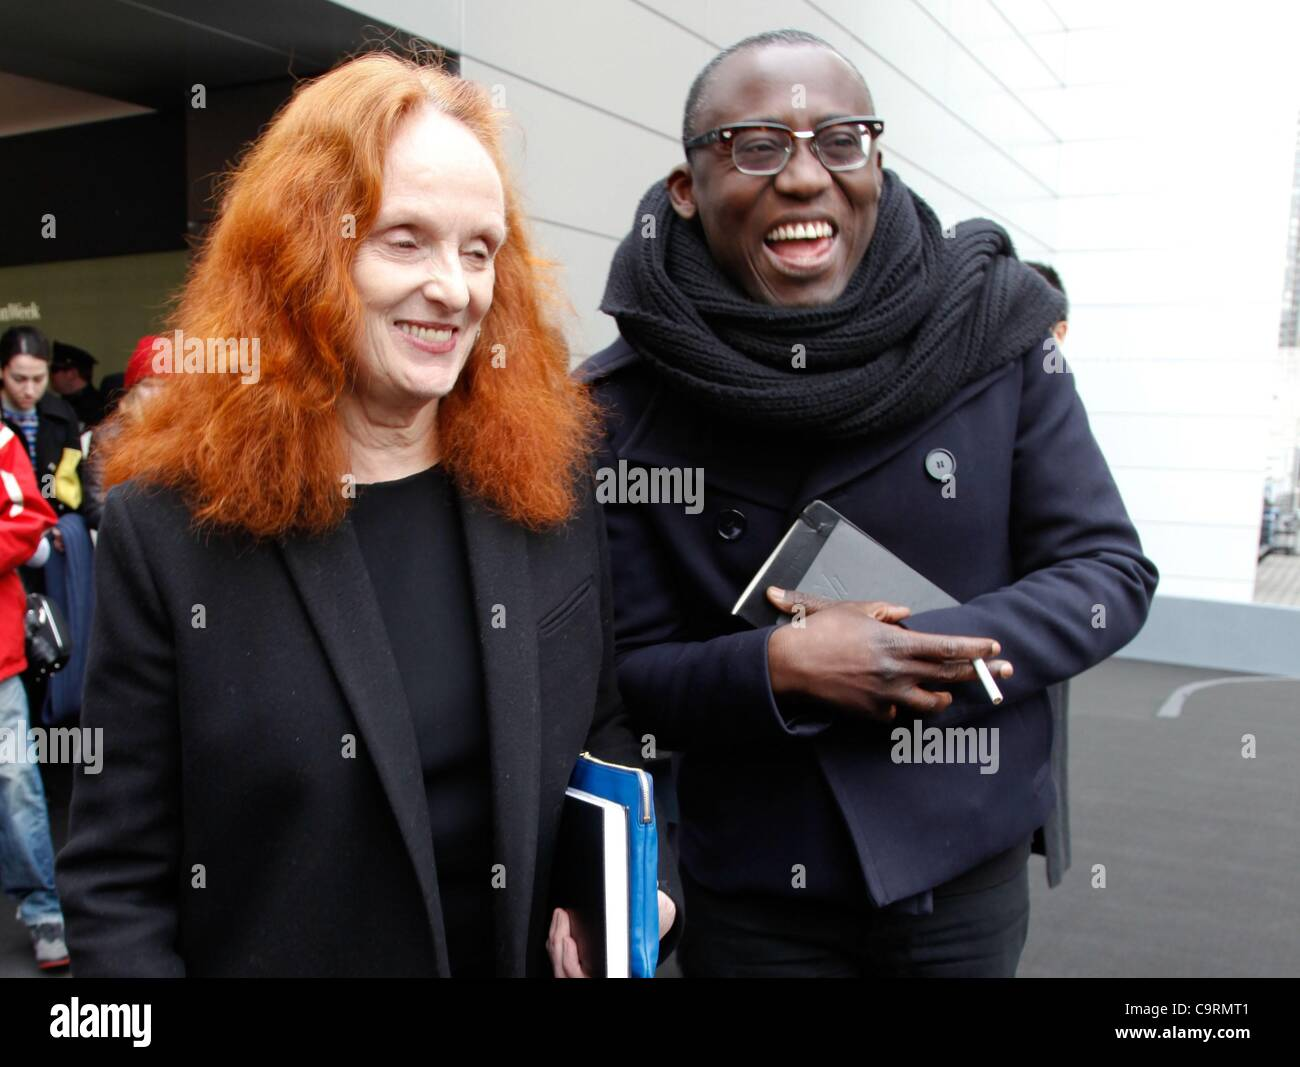 Grace Coddington in attendance for VERA WANG Fall/Winter 2012 Fashion Show at Mercedes-Benz Fashion Week, The Stage - Stock Image